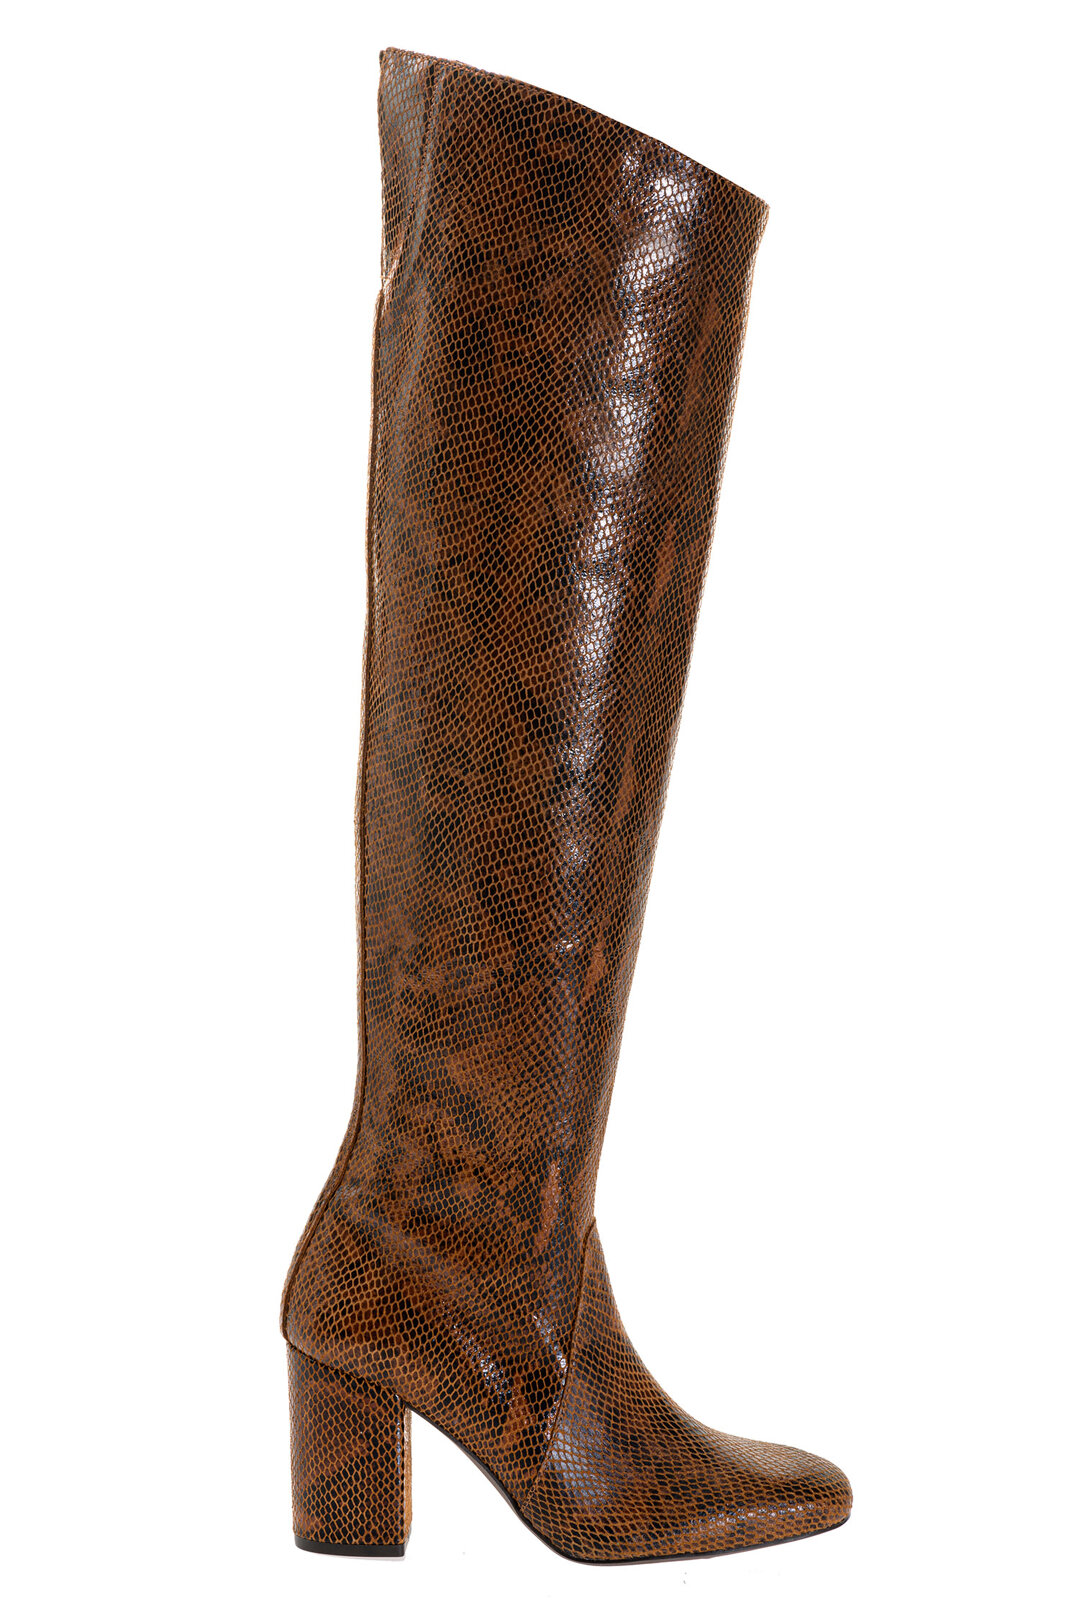 Cuissard Boots In Python Print Leather - Pinko